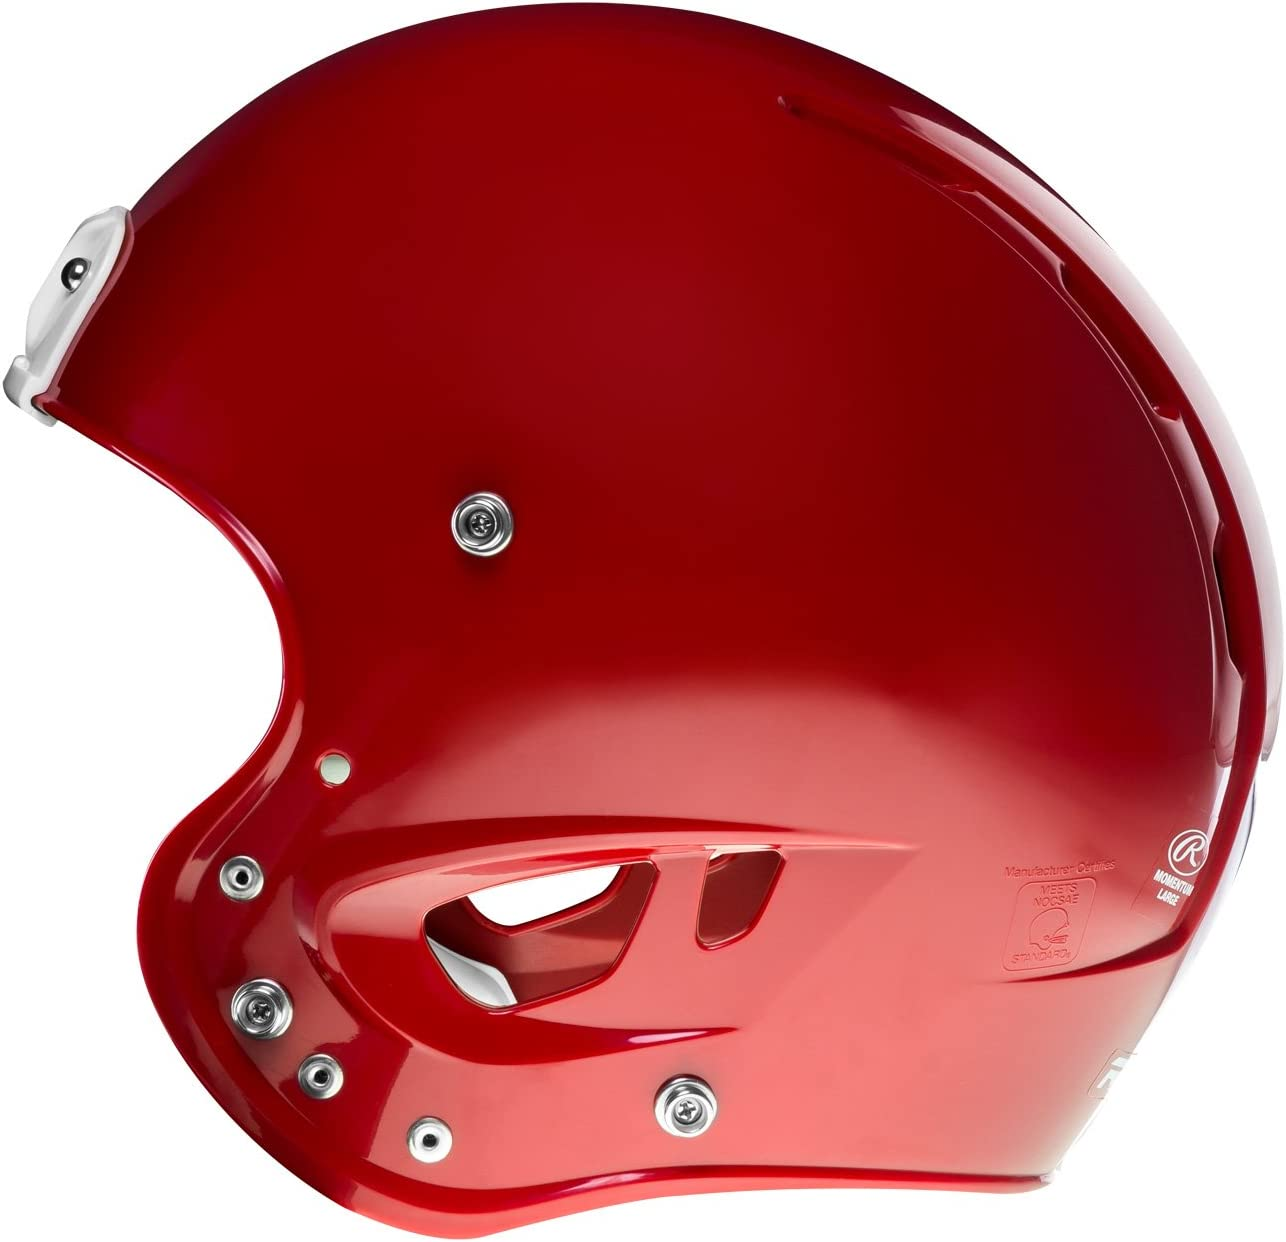 Max 79% OFF Rawlings Momentum Youth Mail order cheap Football Mask Sold Separately Helmet